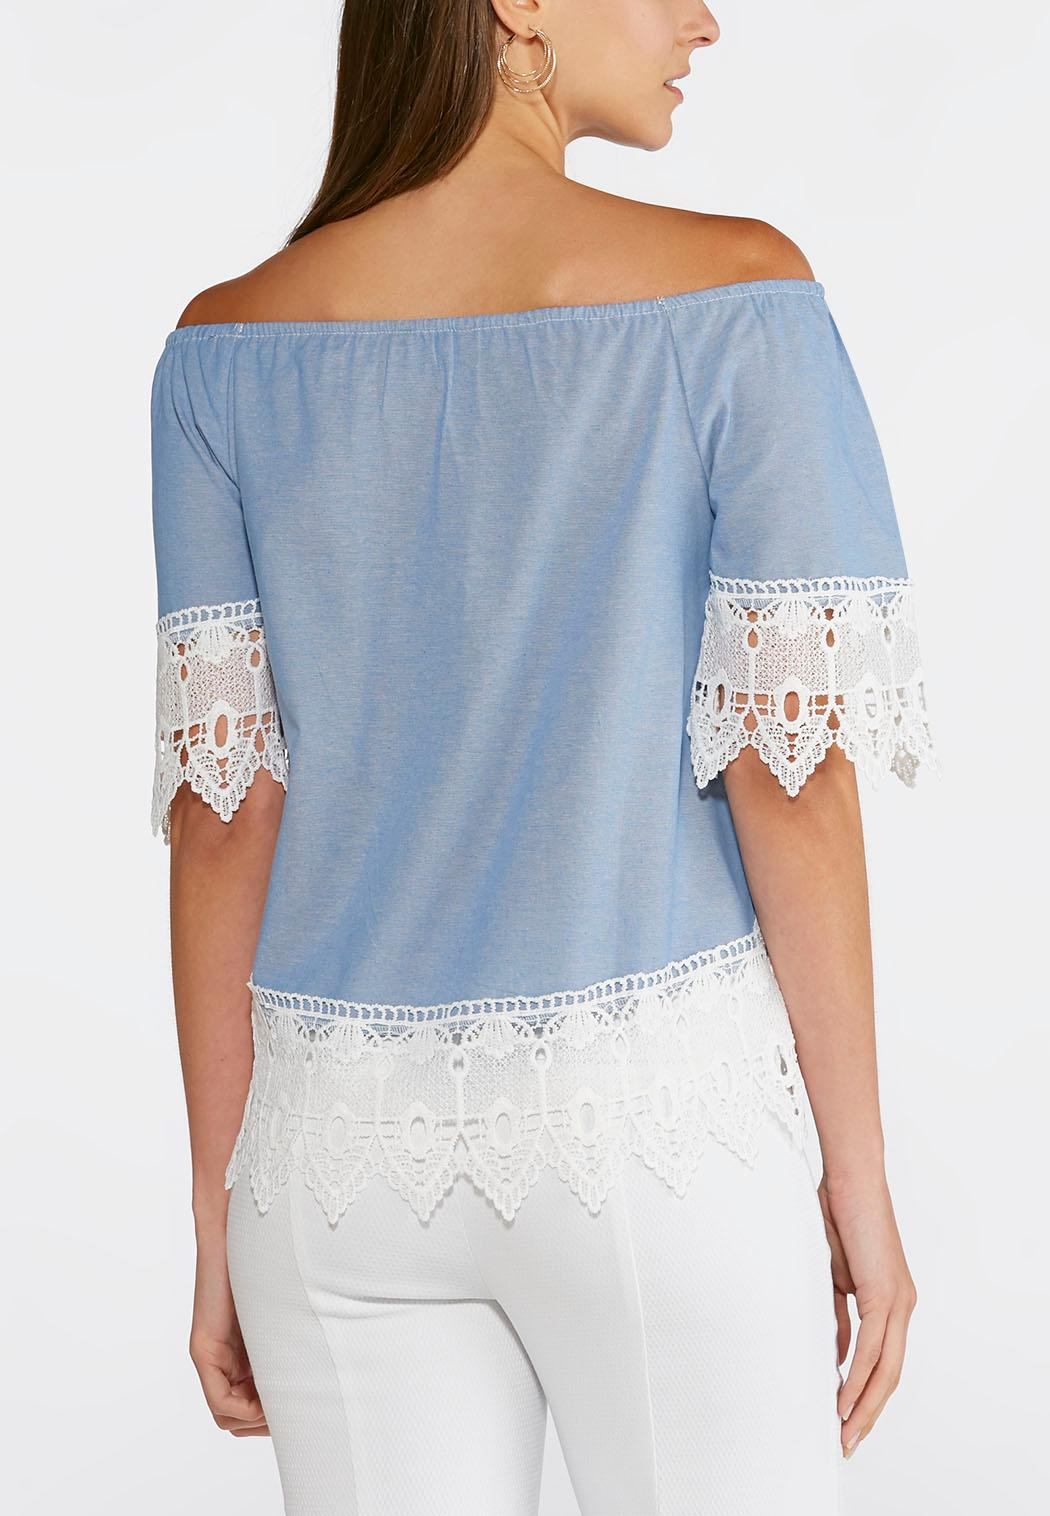 Off The Shoulder Chambray Top Plus Shirts Cato Fashions